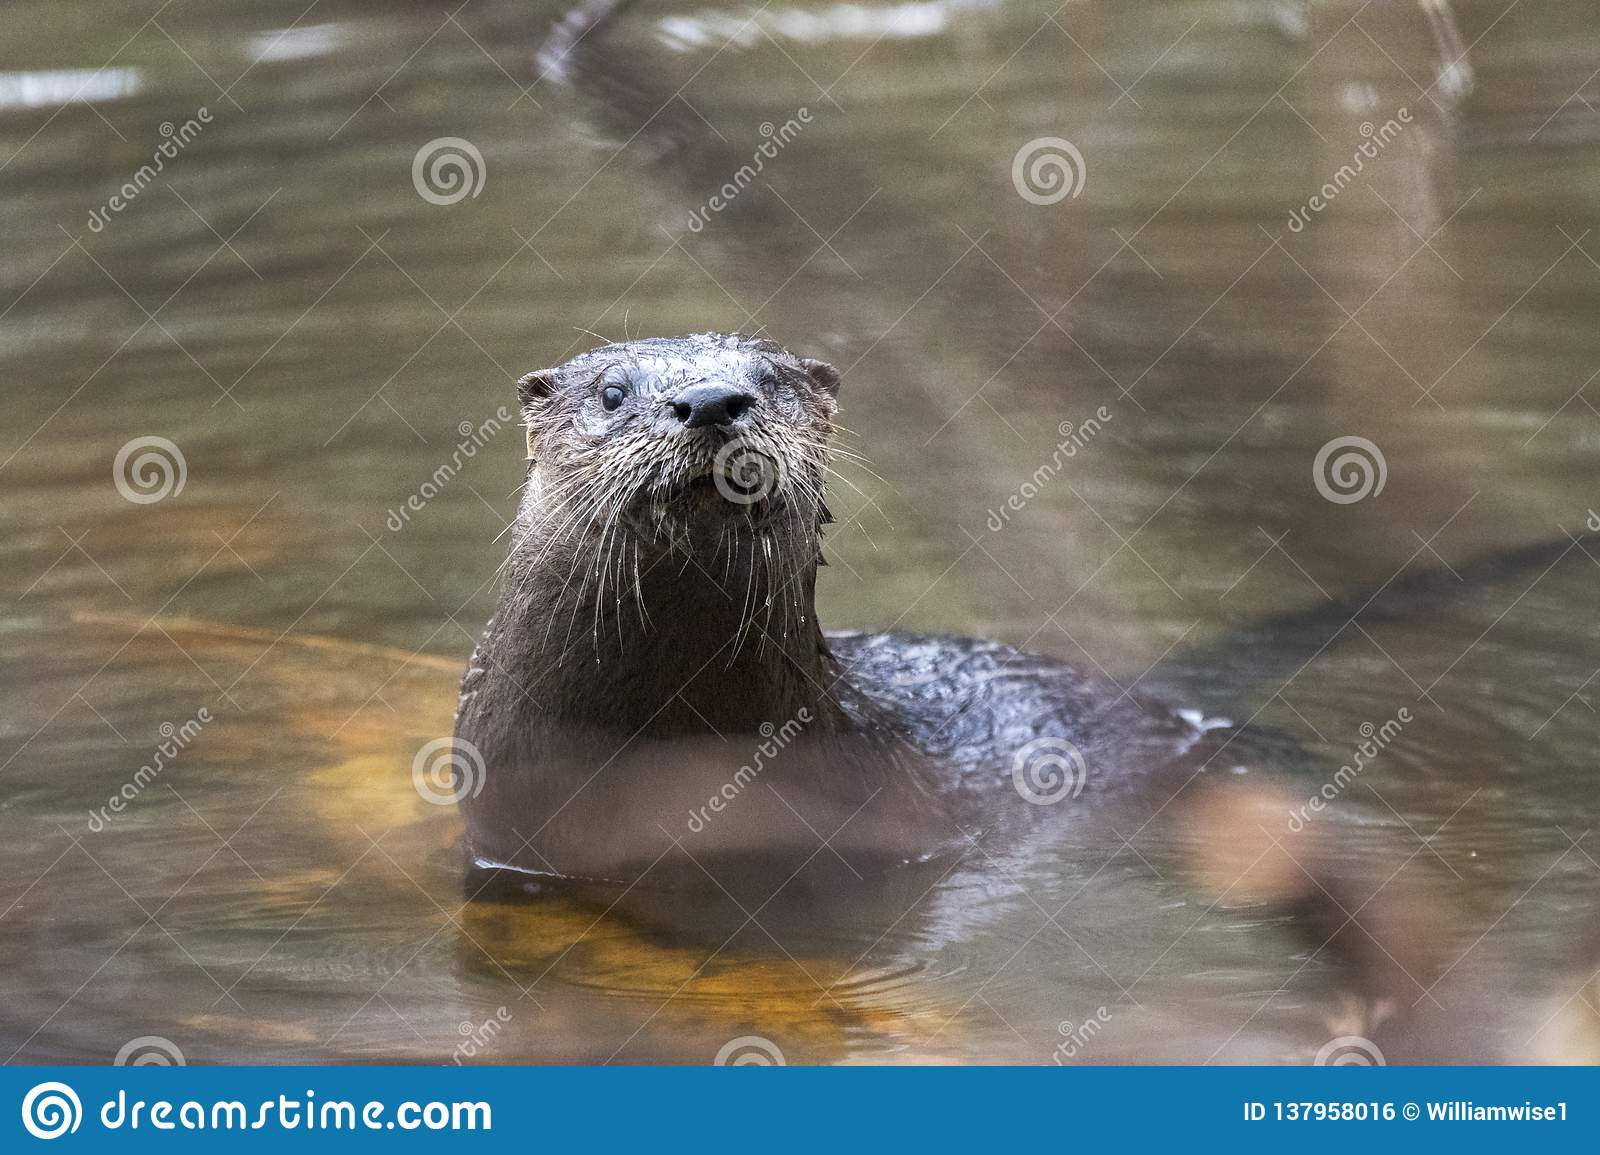 River Otter Swimming In Muddy Georgia Pond, USA Stock Photo